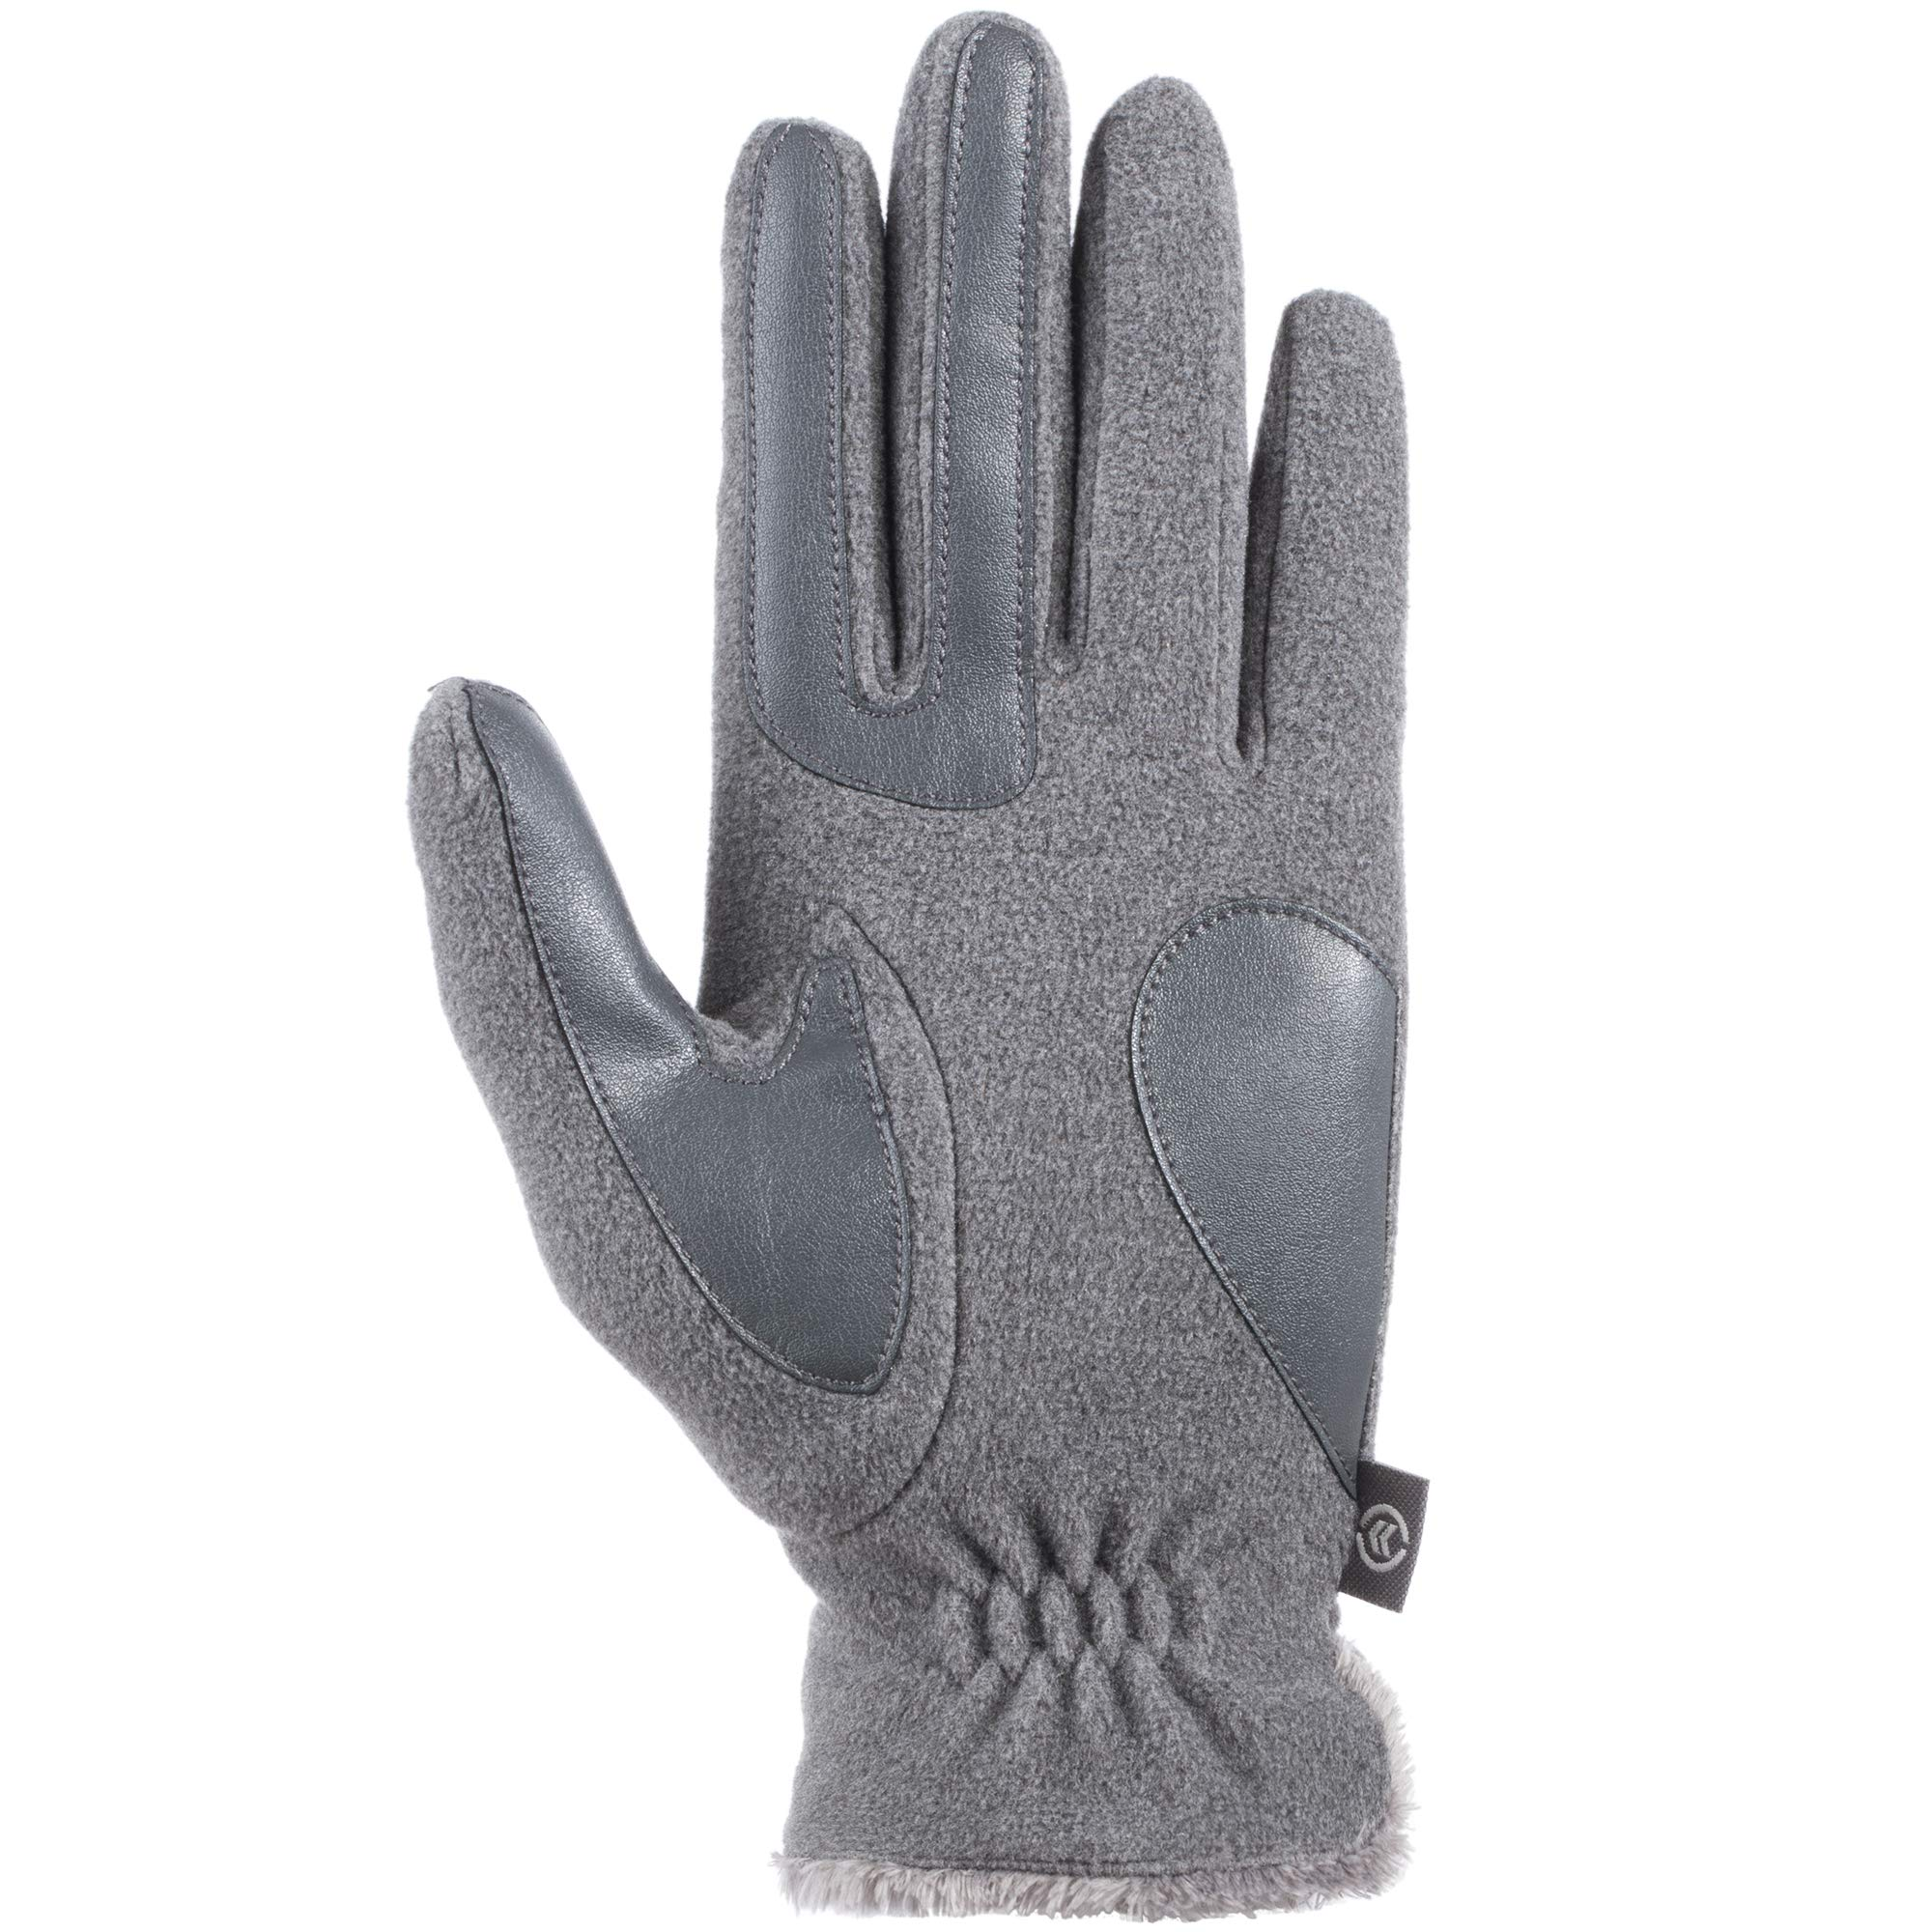 Isotoner Women's Stretch Fleece Gloves with Microluxe and Smart Touch Technology by ISOTONER